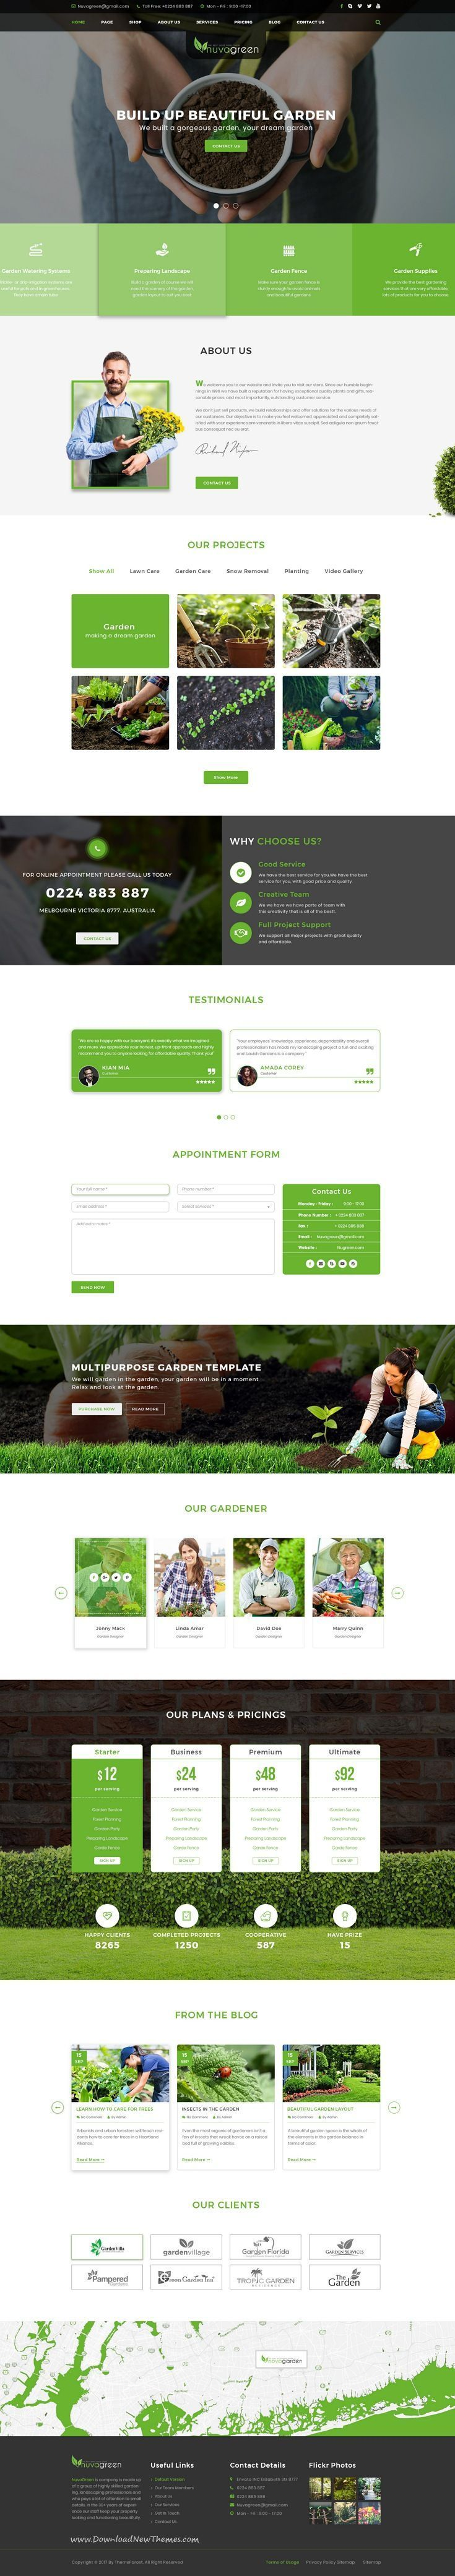 Nuvagreen Is Clean And Modern Design Psd Template For Gardening Landscaping Agriculture And Lawn Services Website Design Websites Web Design Layout Design